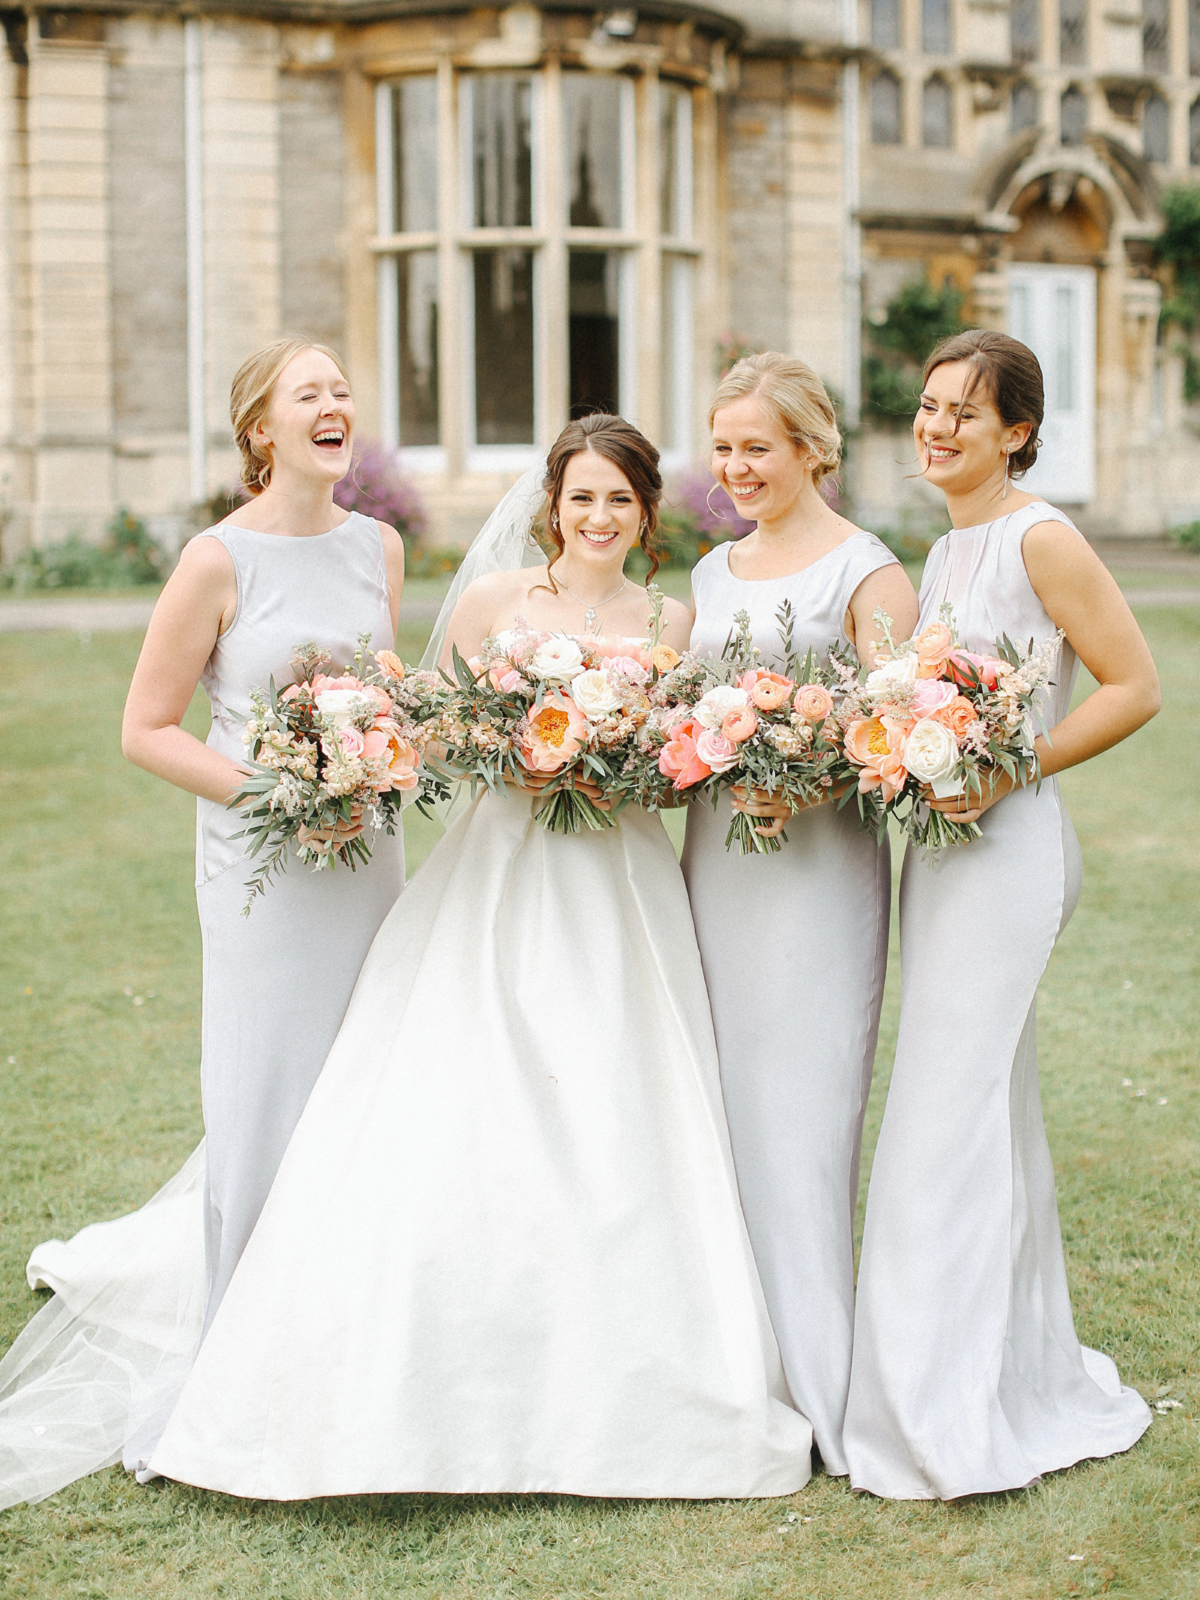 Ghost bridesmaids dresses in pale slate grey - A Caroline Castigliano Gown for a Chic and Classic Manor House Wedding in Shades of Peach